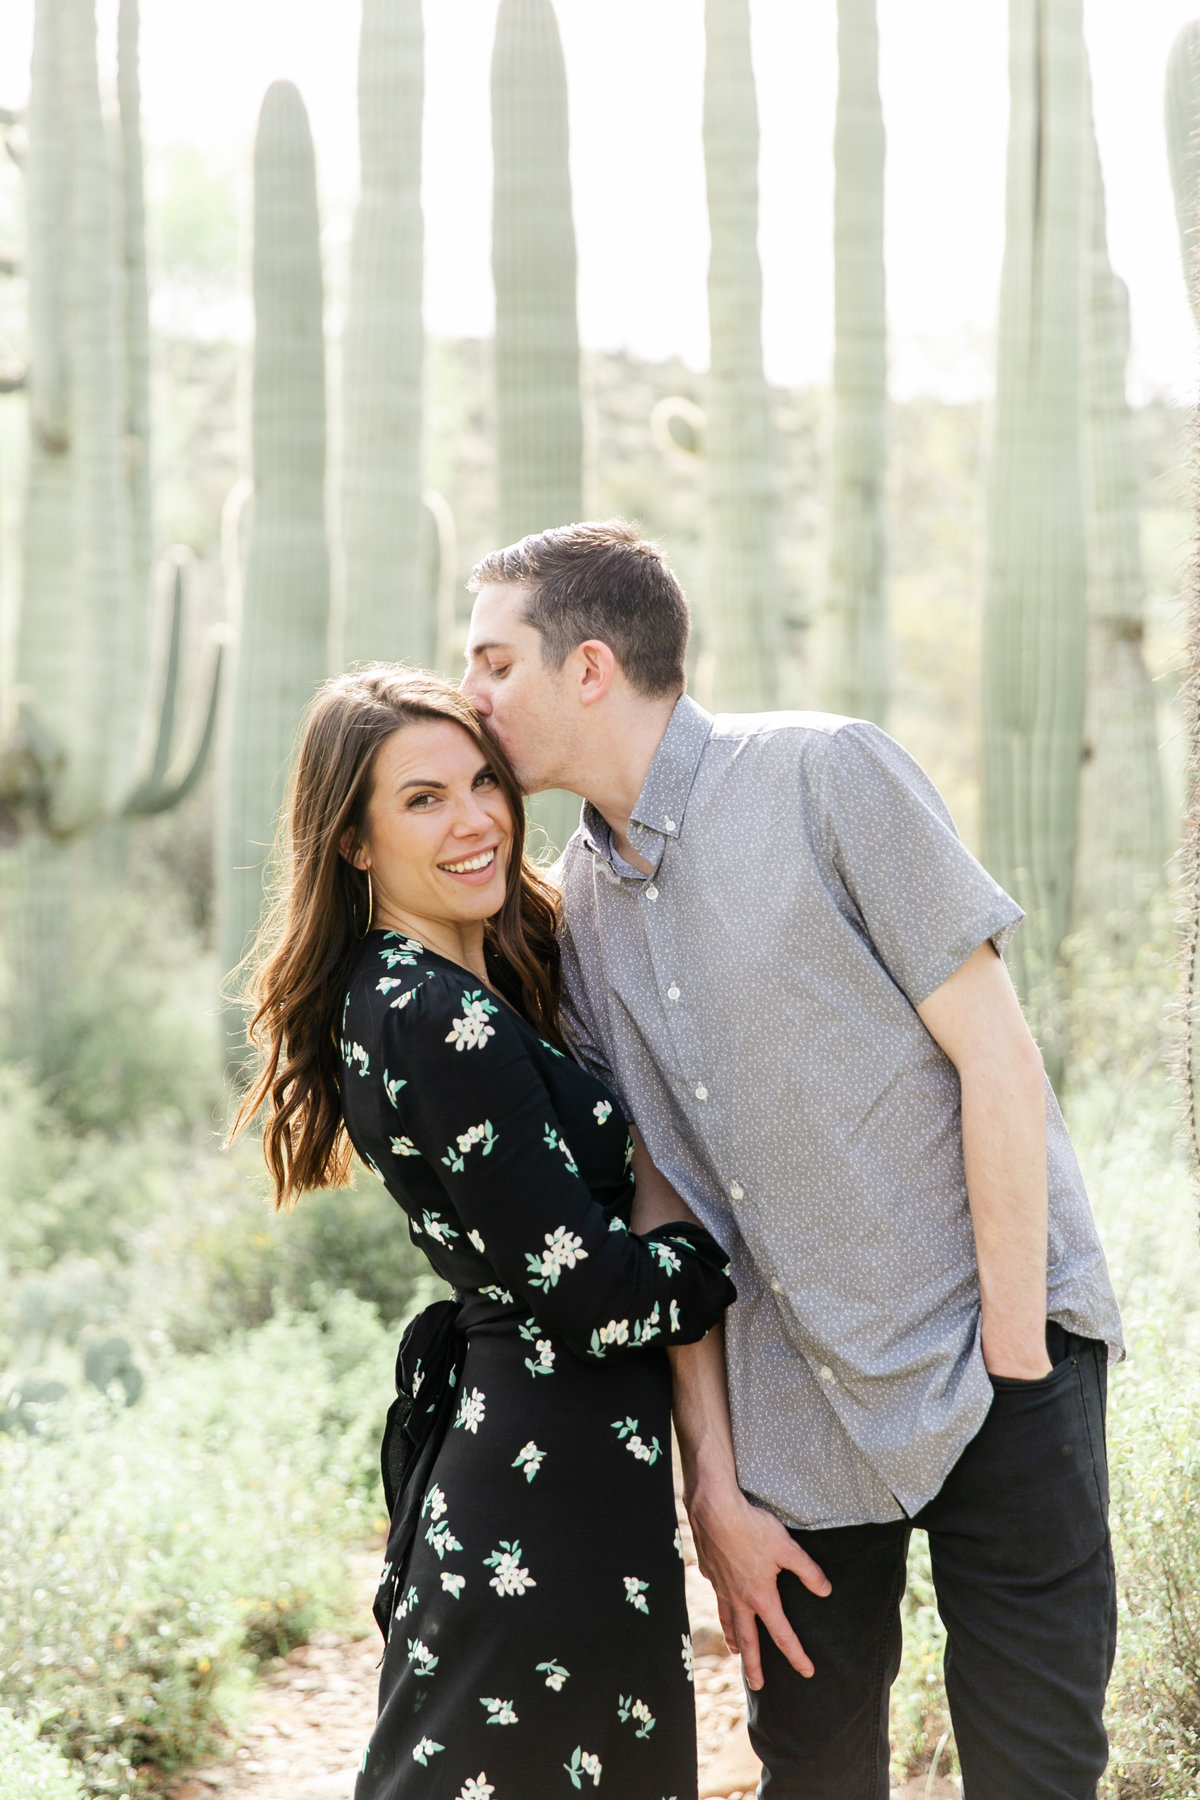 Karlie Colleen Photography - Emily & Ryan Engagement Session - El Chorro Wedding - Revel Wedding Co-45